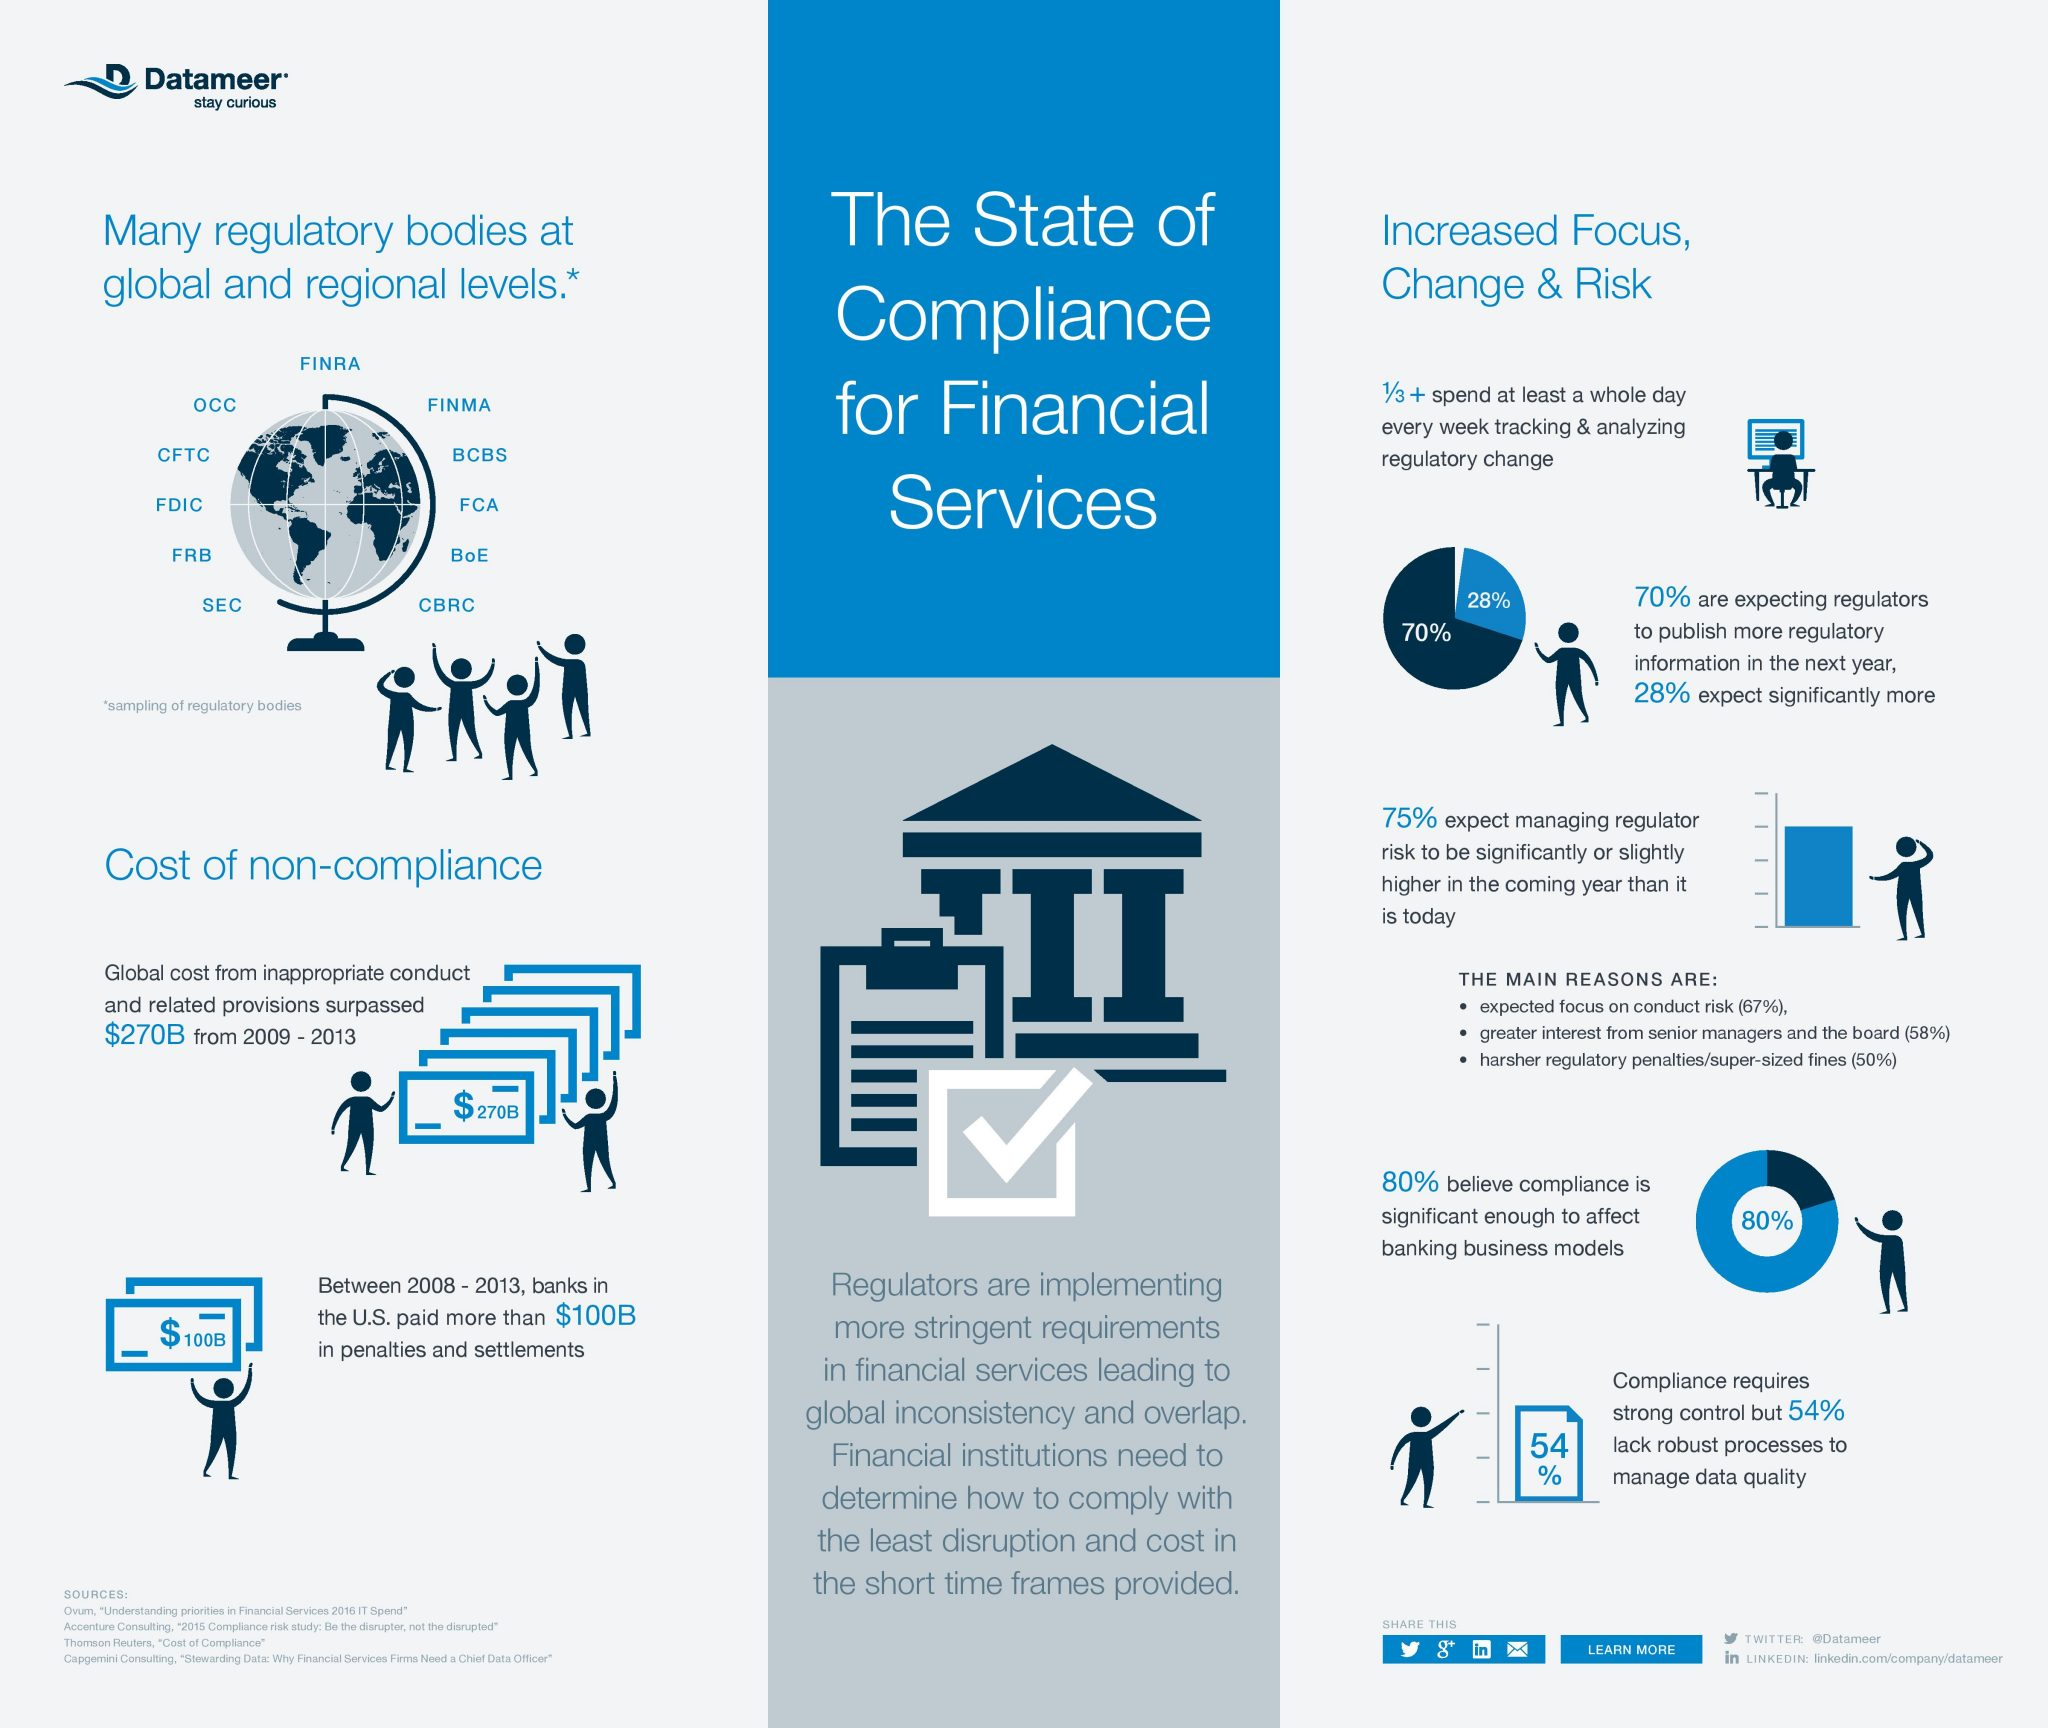 The state of compliance for financial services